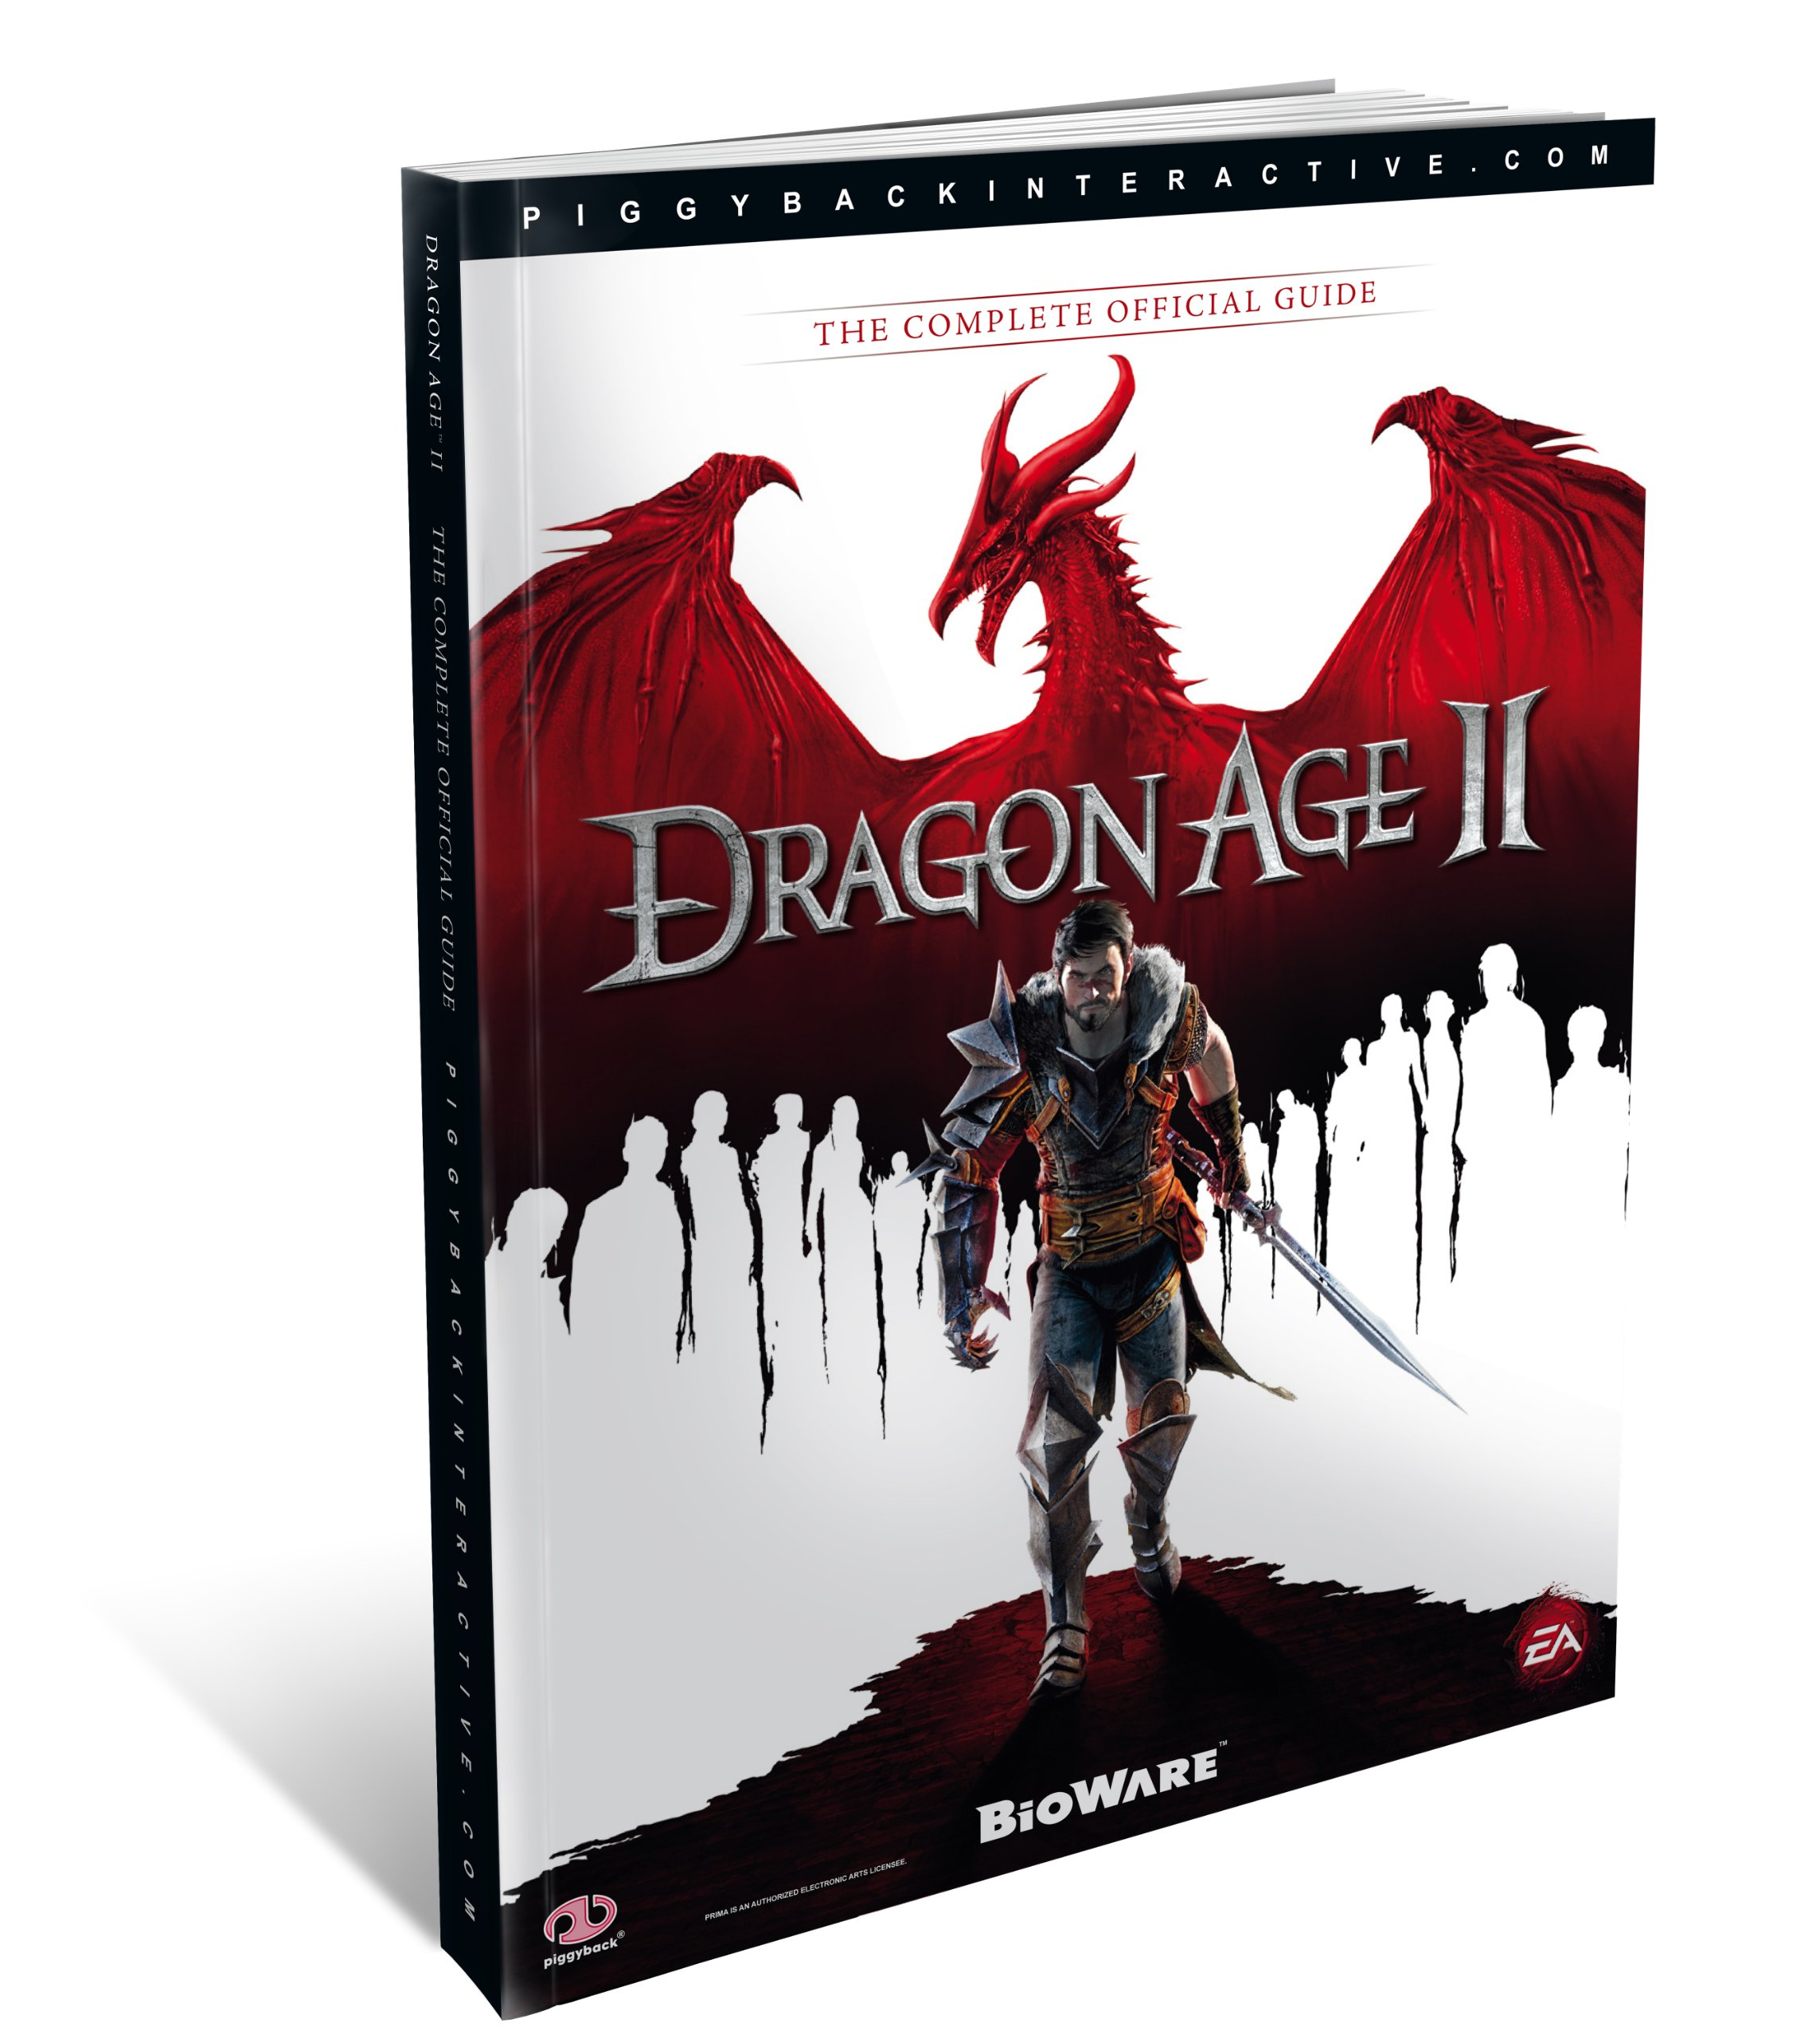 Dragon age ii the complete official guide piggyback 9781906064792 dragon age ii the complete official guide piggyback 9781906064792 amazon books gumiabroncs Image collections